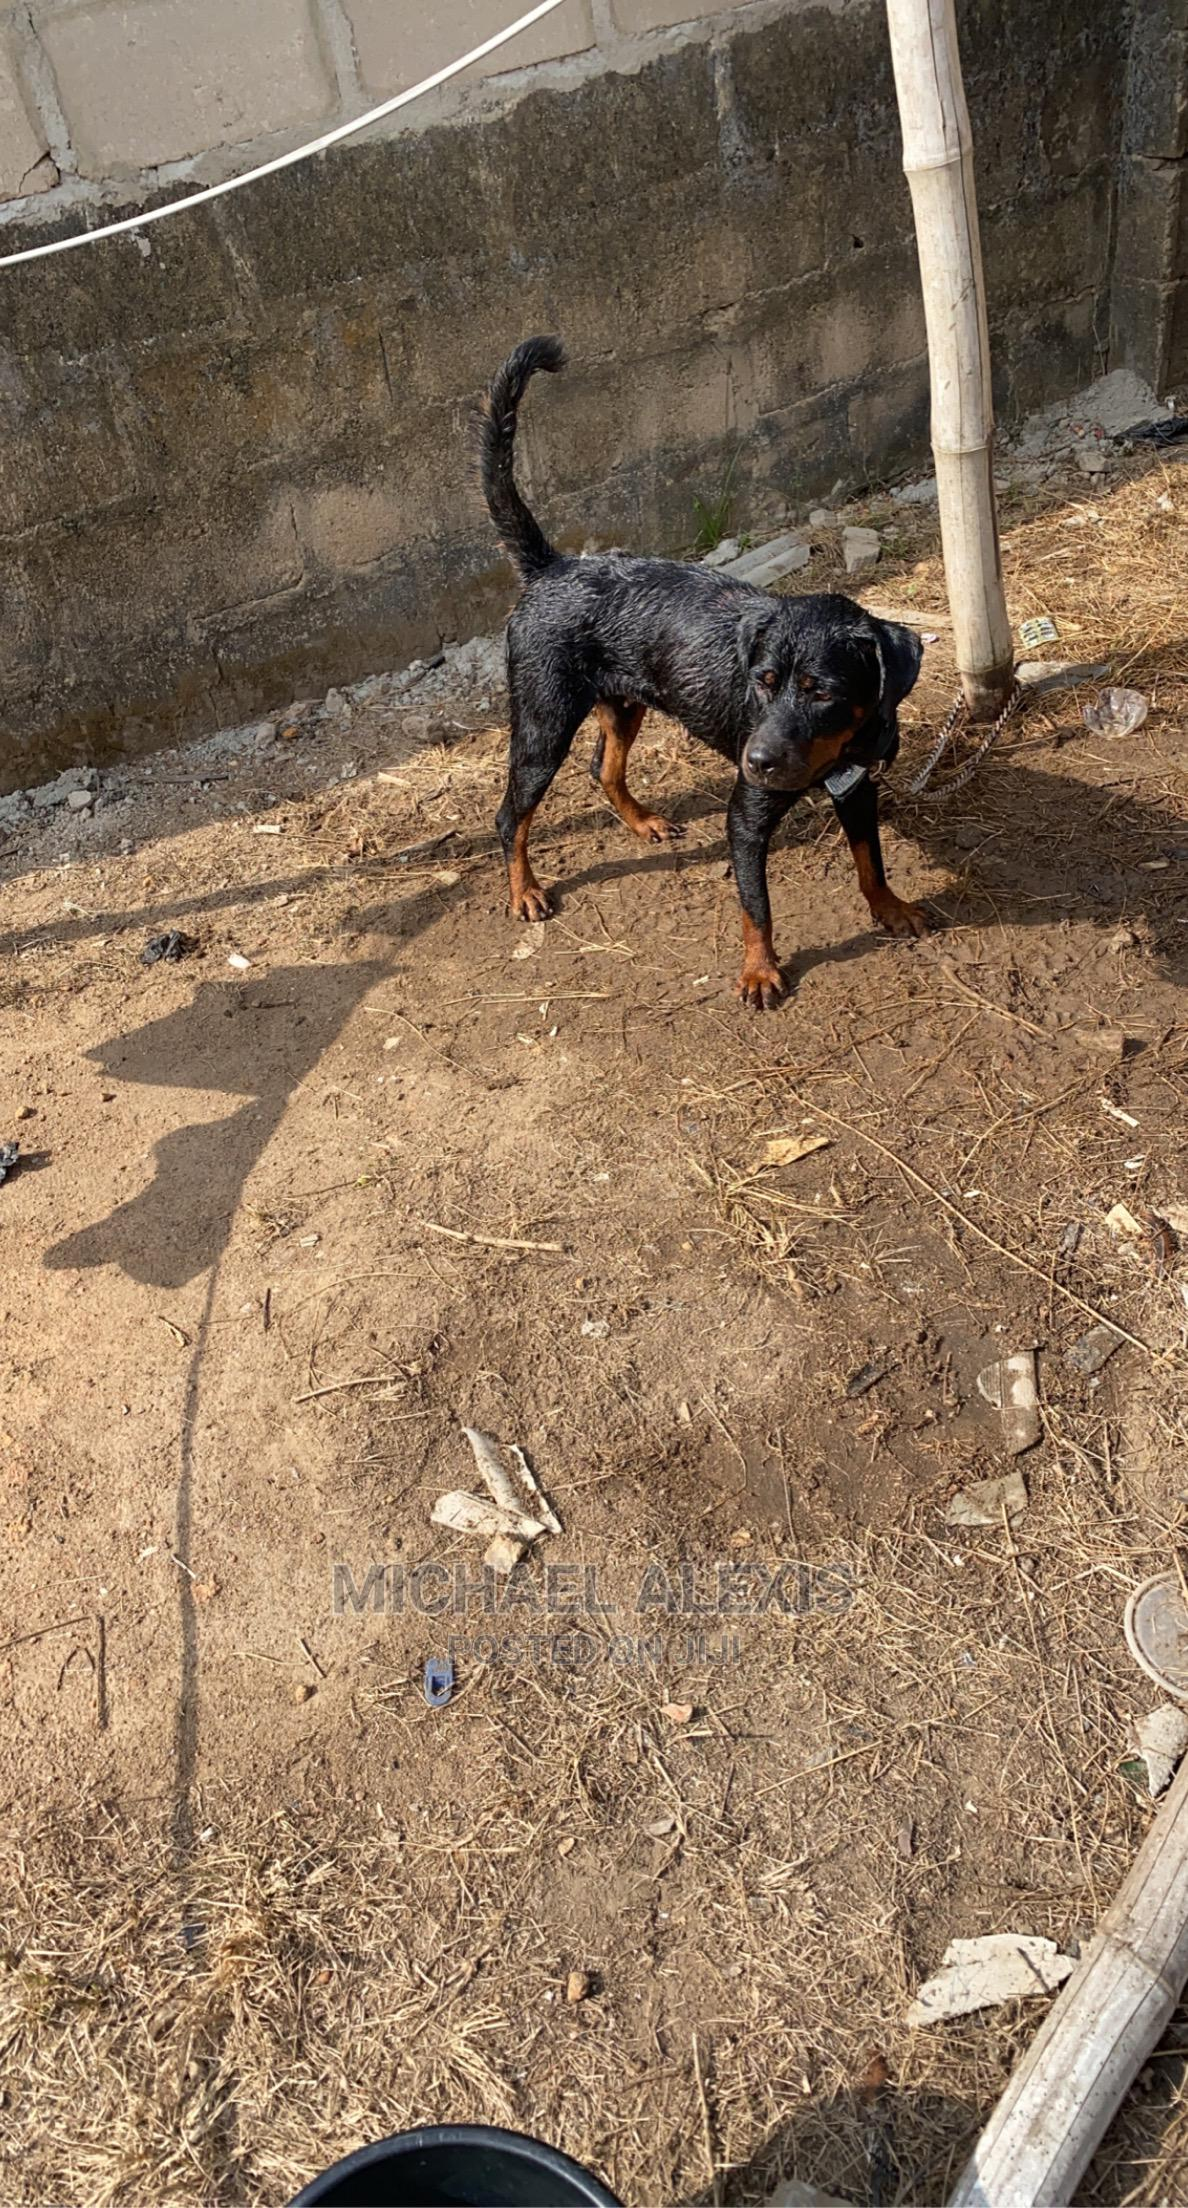 1+ Year Female Purebred Rottweiler | Dogs & Puppies for sale in Agboyi/Ketu, Lagos State, Nigeria